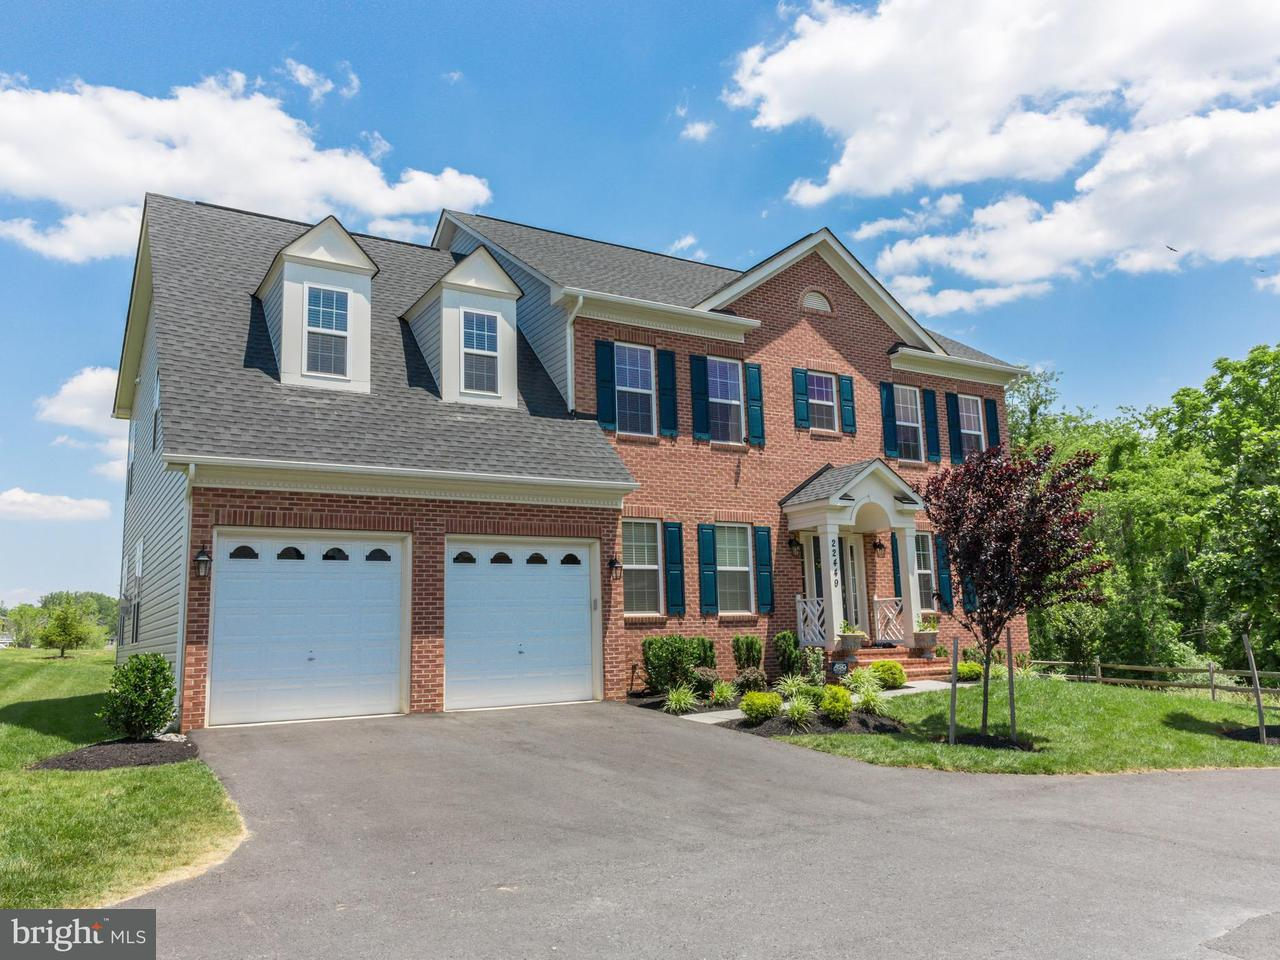 Single Family Home for Sale at 22449 WINDING WOODS WAY 22449 WINDING WOODS WAY Clarksburg, Maryland 20871 United States